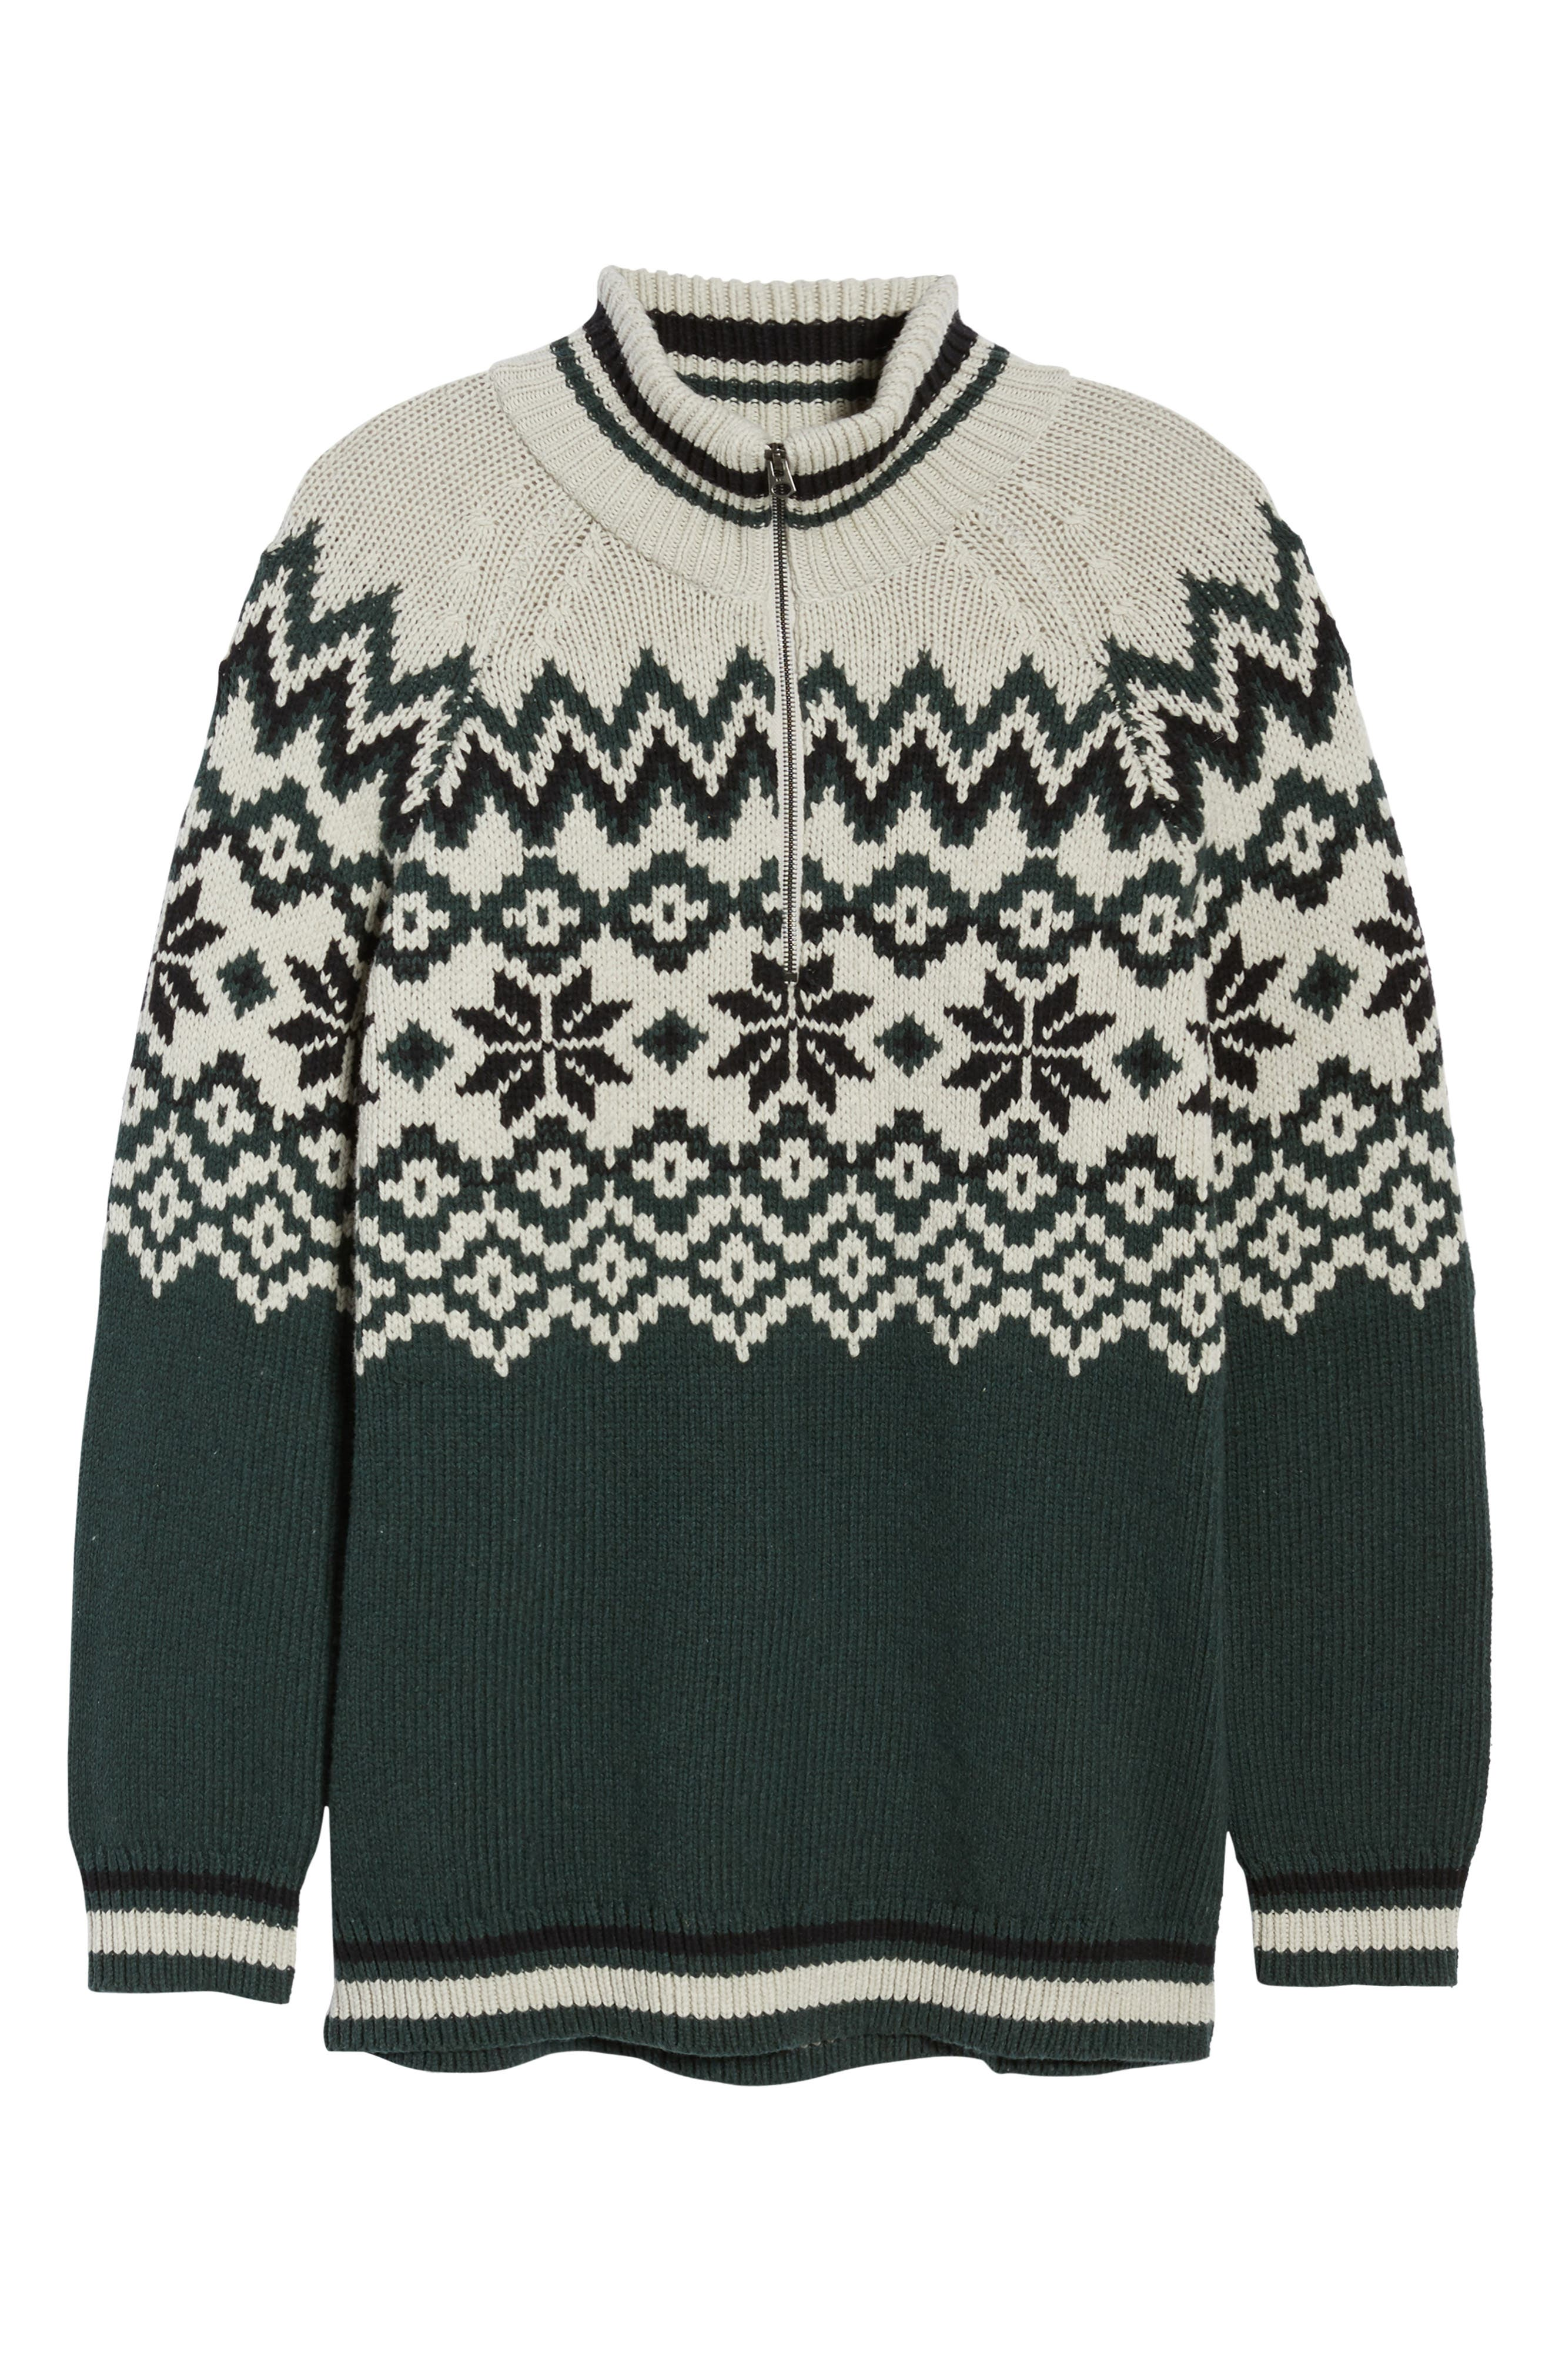 Fair Isle Ski Sweater,                             Alternate thumbnail 6, color,                             Clay/ Darkest Spruce/ Black